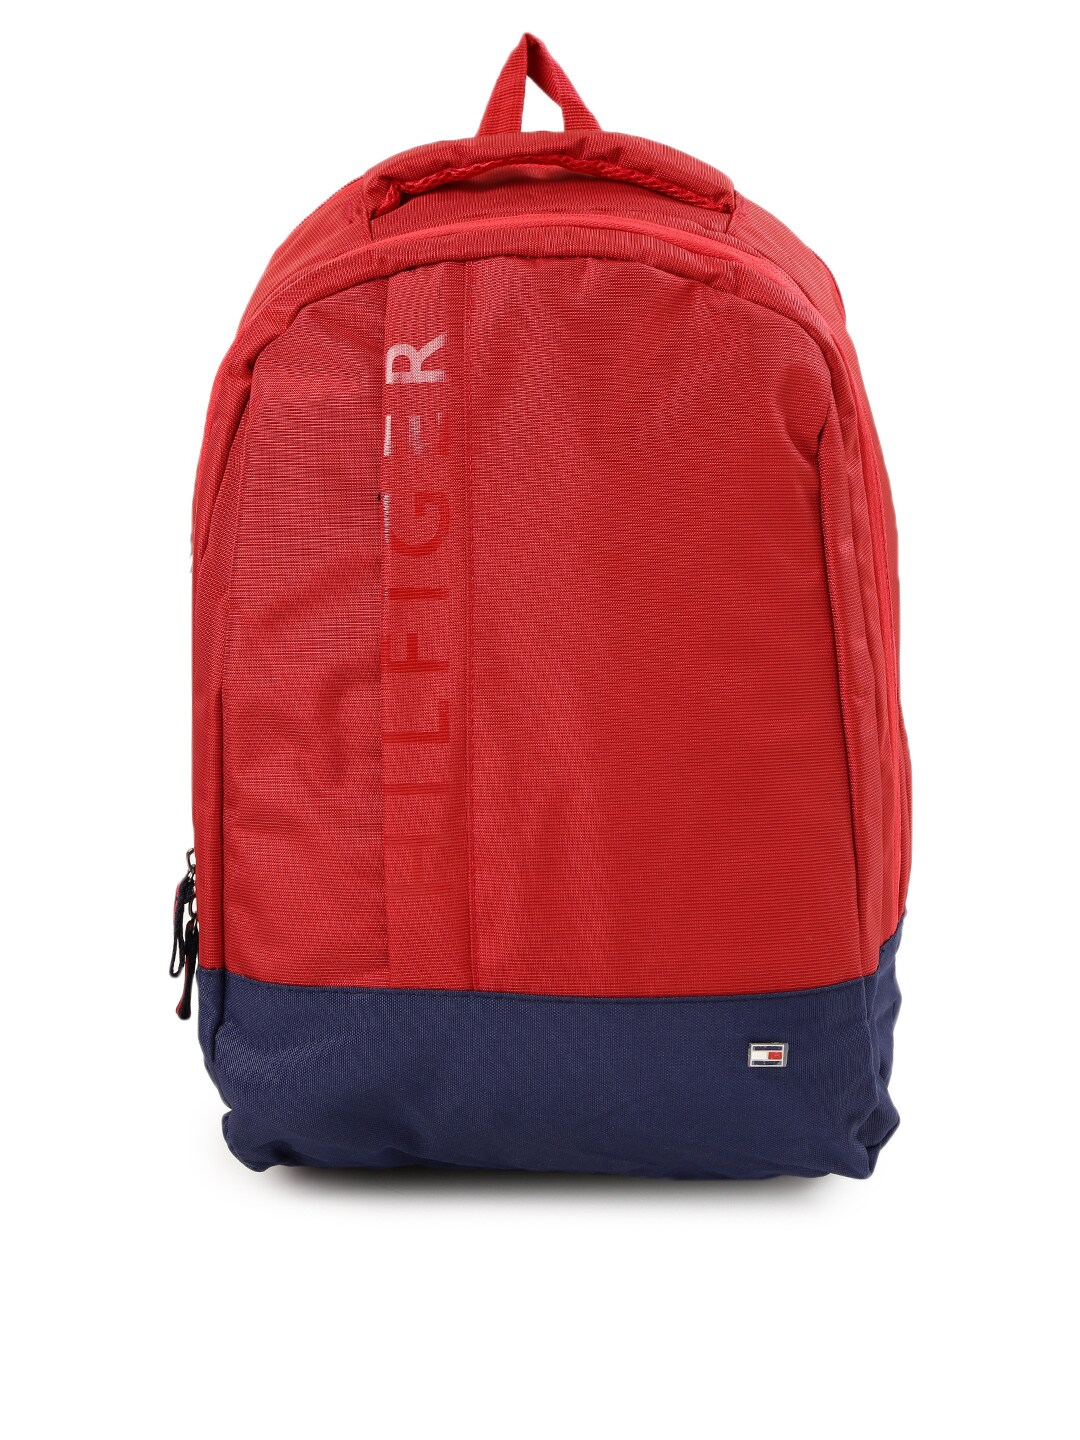 8225aa77d Tommy Hilfiger Clothing - Buy Tommy Hilfiger Bags